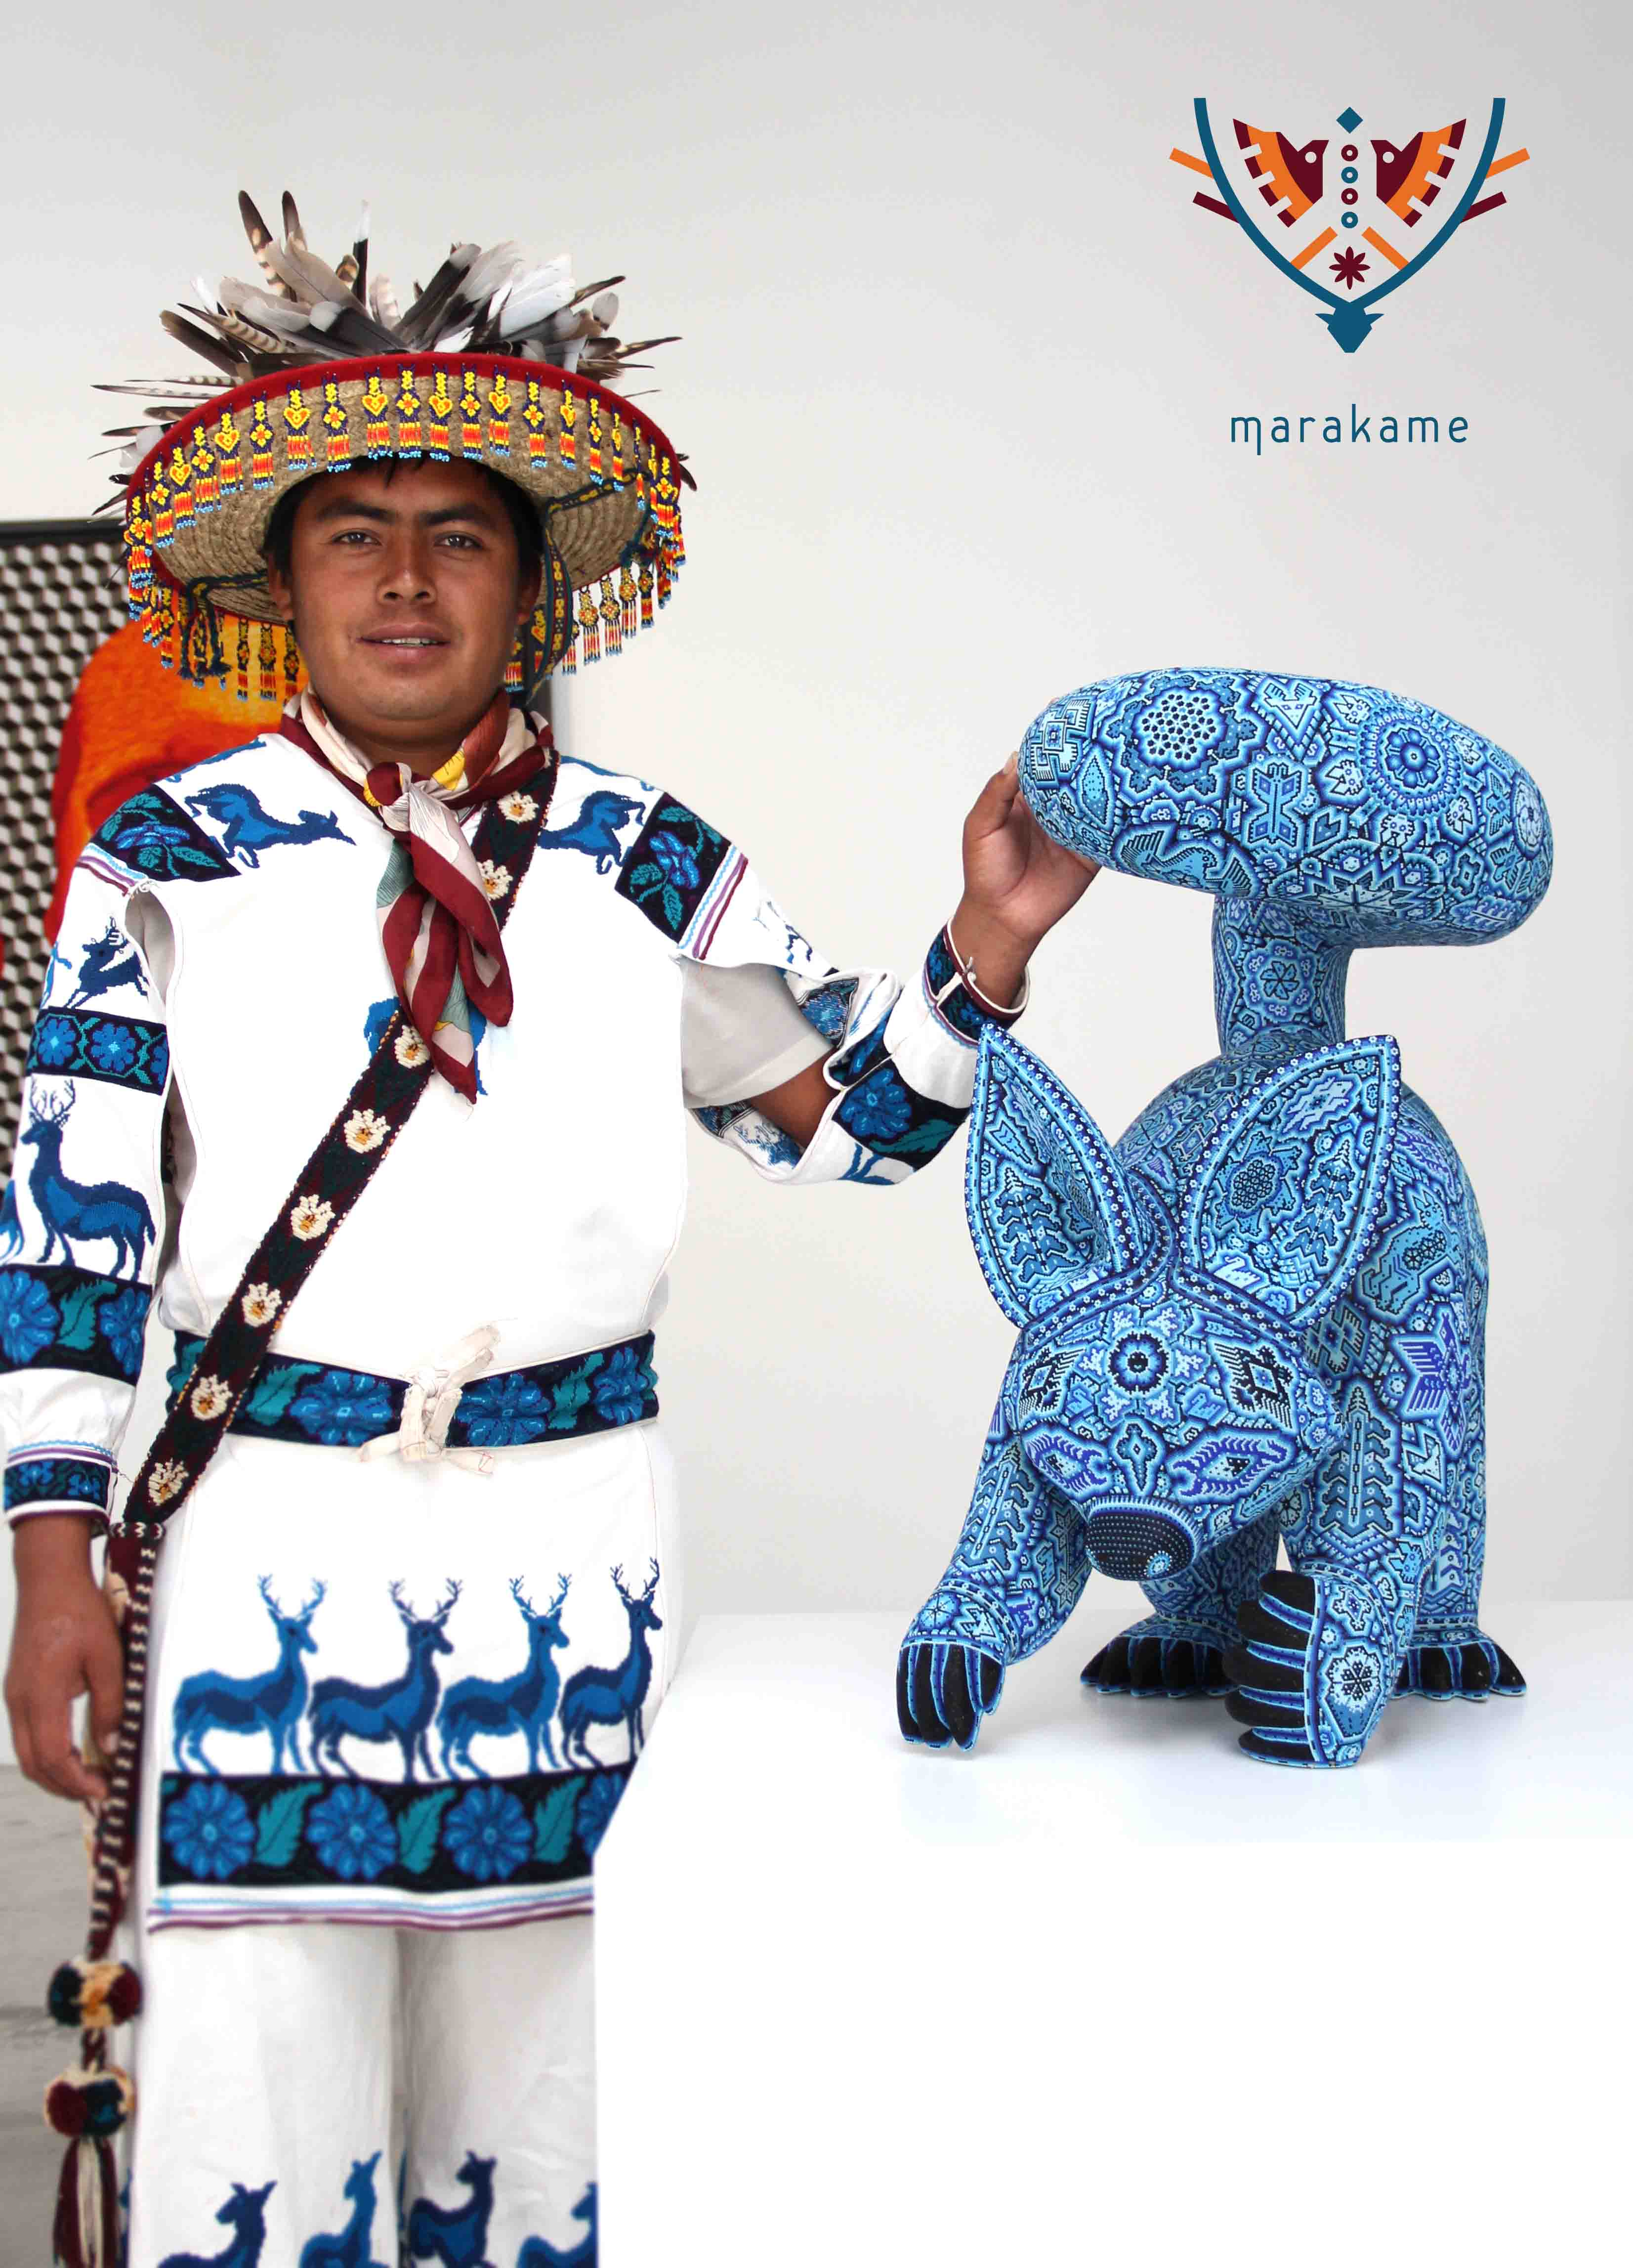 Large-format wooden sculpture of a fox in blue beads, with the artist Sergio Bautista